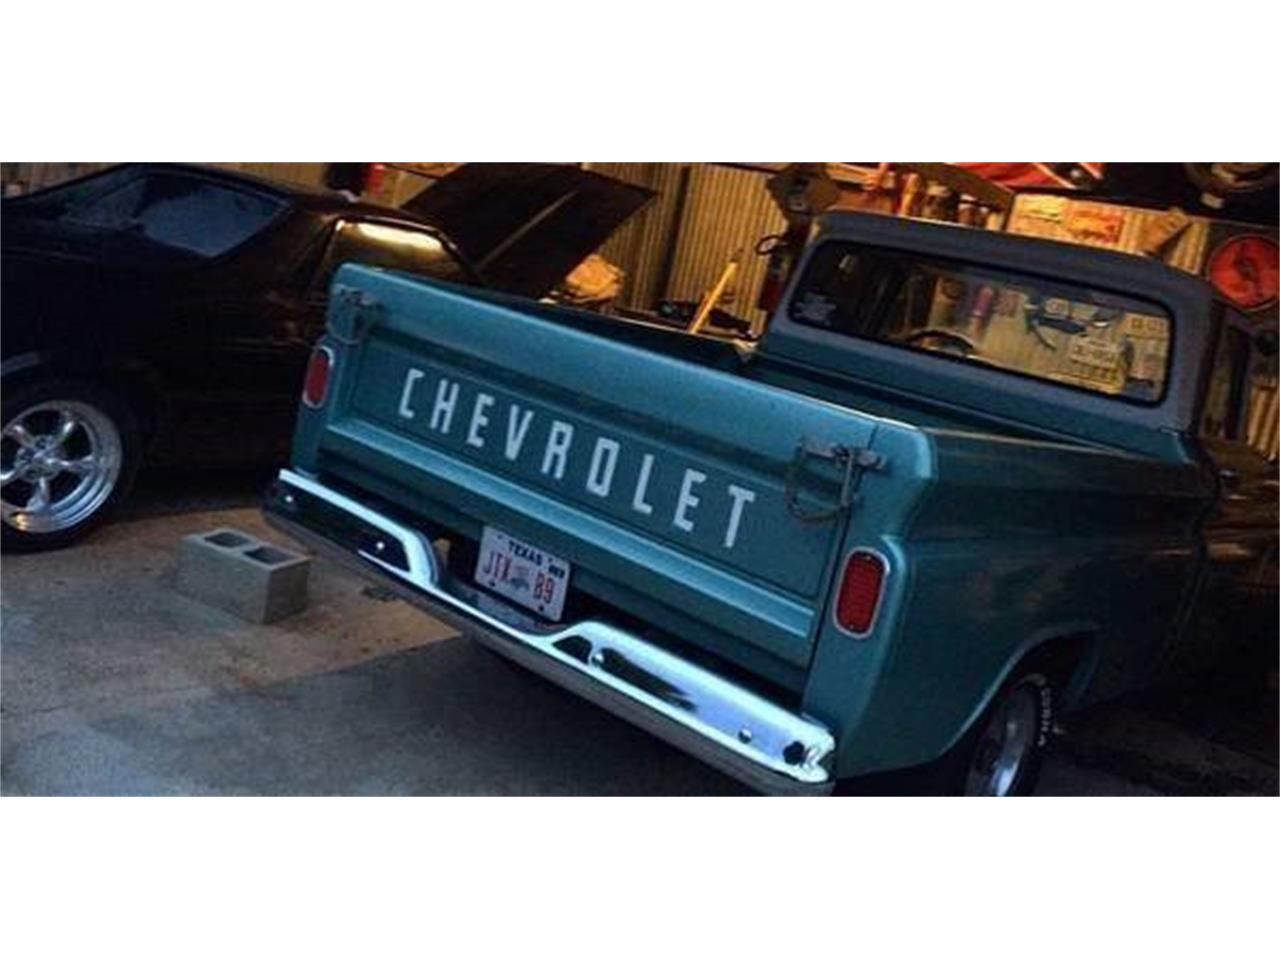 Large Picture of '63 Chevrolet Van located in New York - $25,500.00 Offered by DP9 Motorsports - PP4R